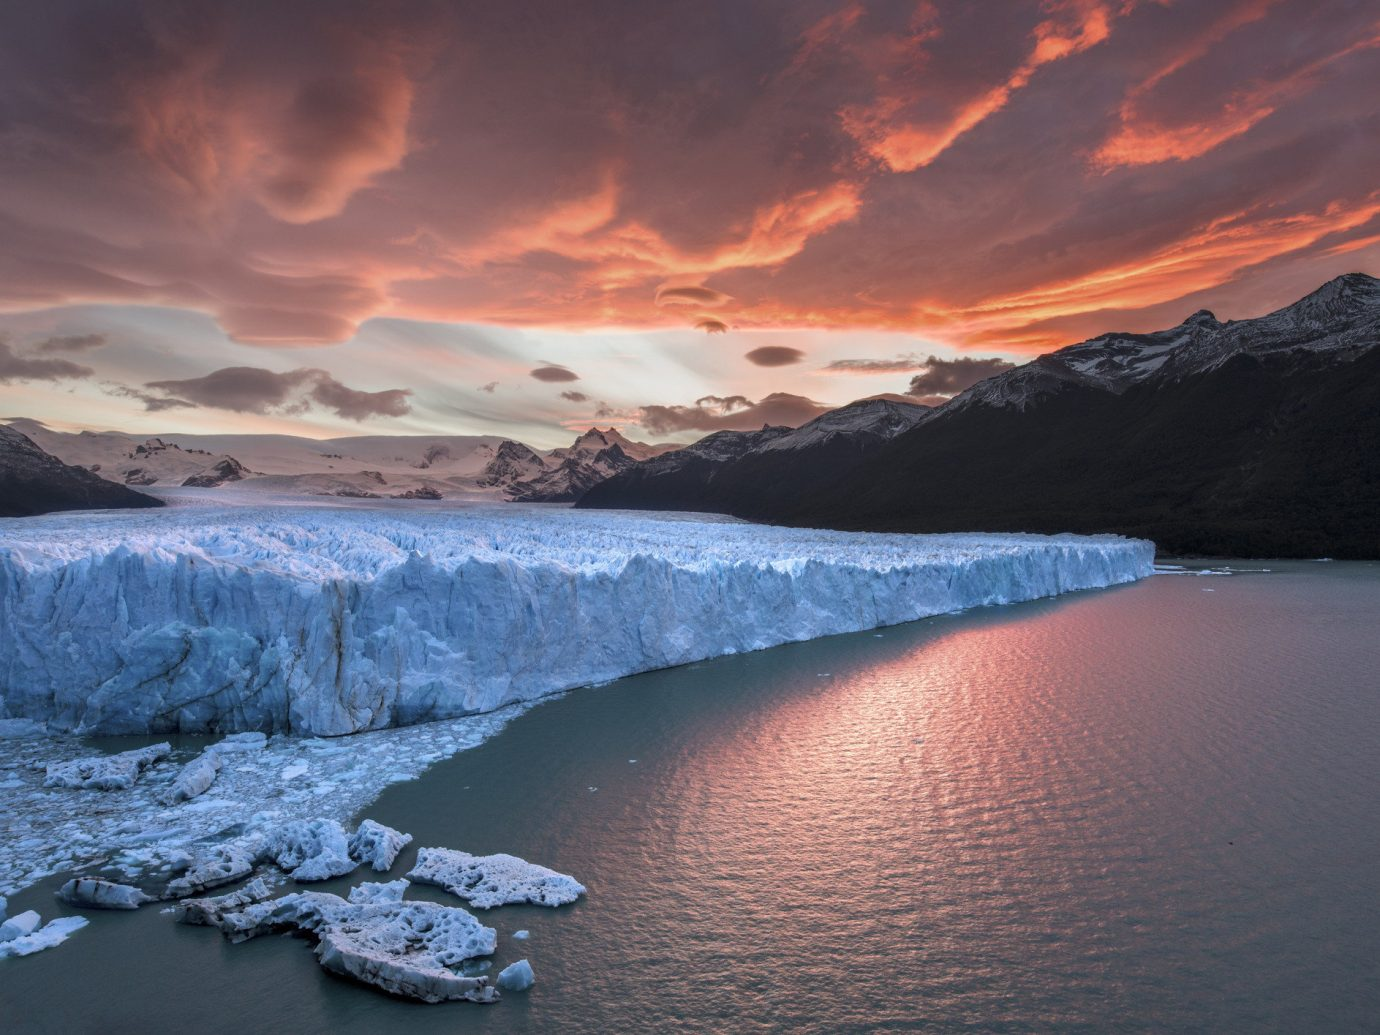 Trip Ideas sky mountain water outdoor Nature body of water Lake loch cloud reflection valley Sea canyon dawn morning sunrise Sunset Coast landscape fjord dusk reservoir mountain range bay glacial landform arctic overlooking rock Island